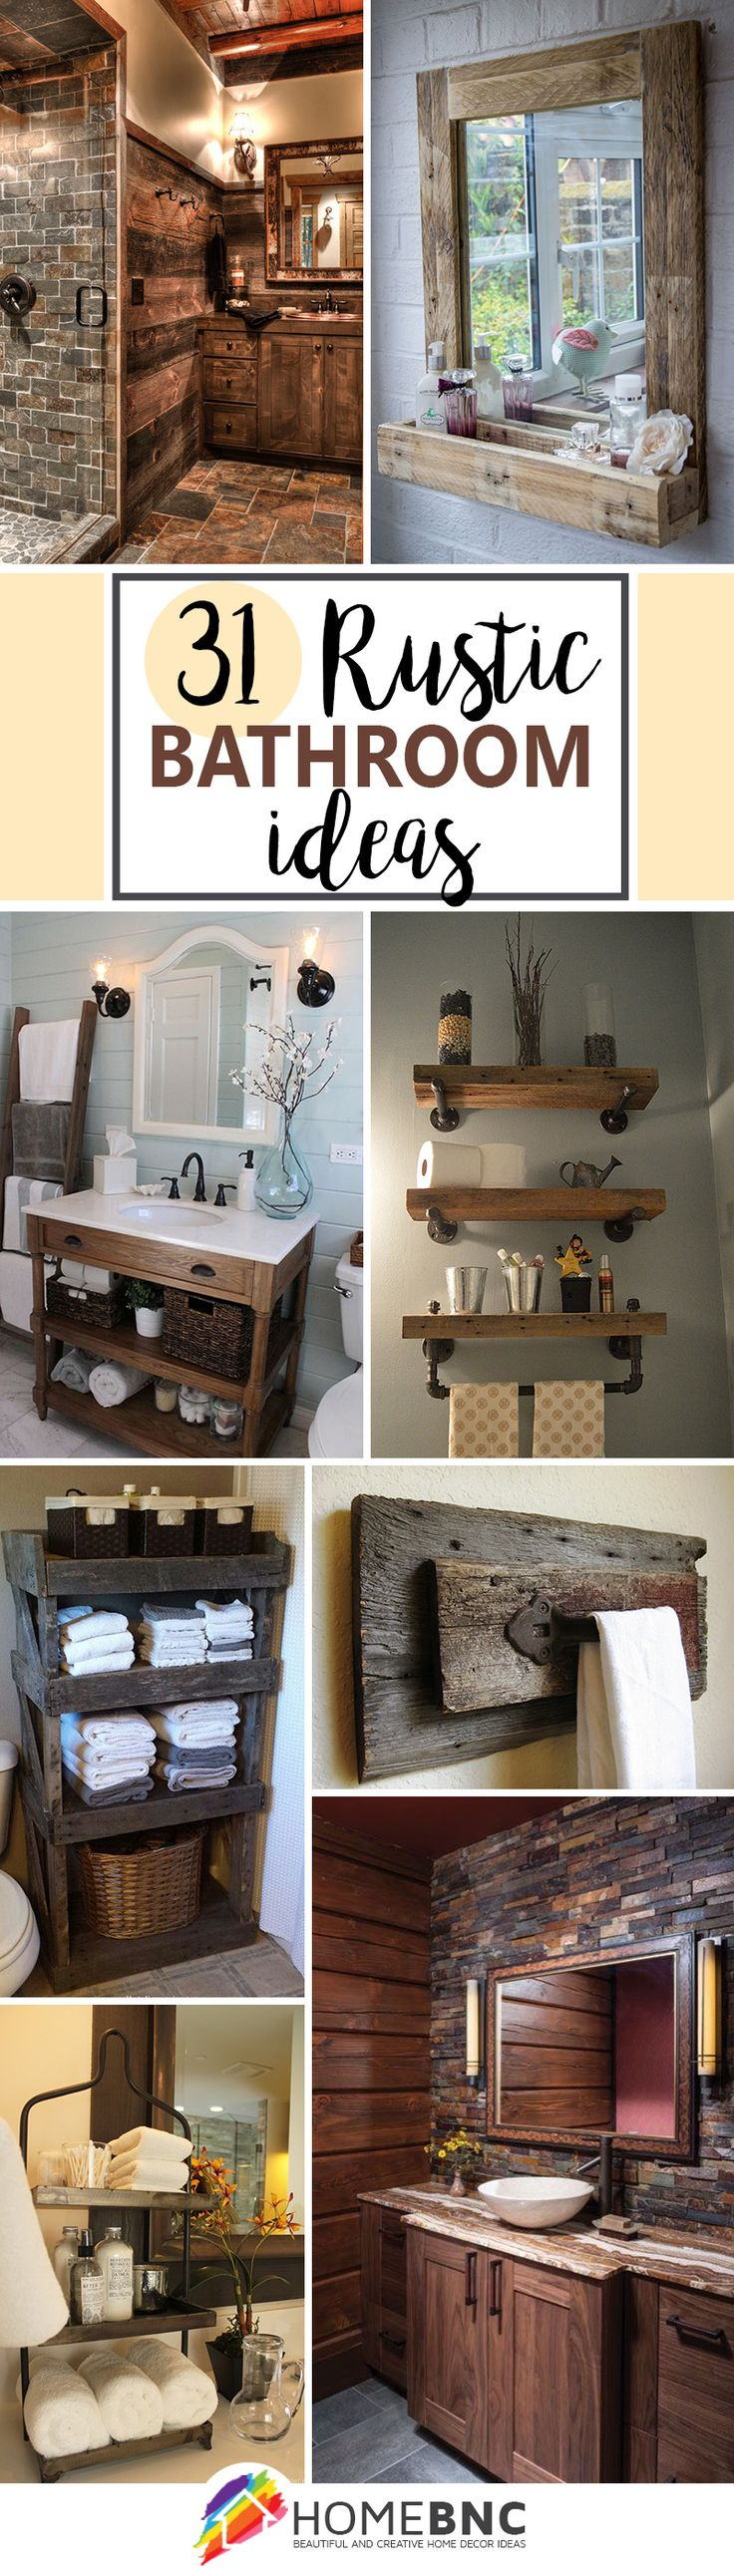 Decorating Ideas For Bathroom best 25+ rustic bathrooms ideas on pinterest | country bathrooms